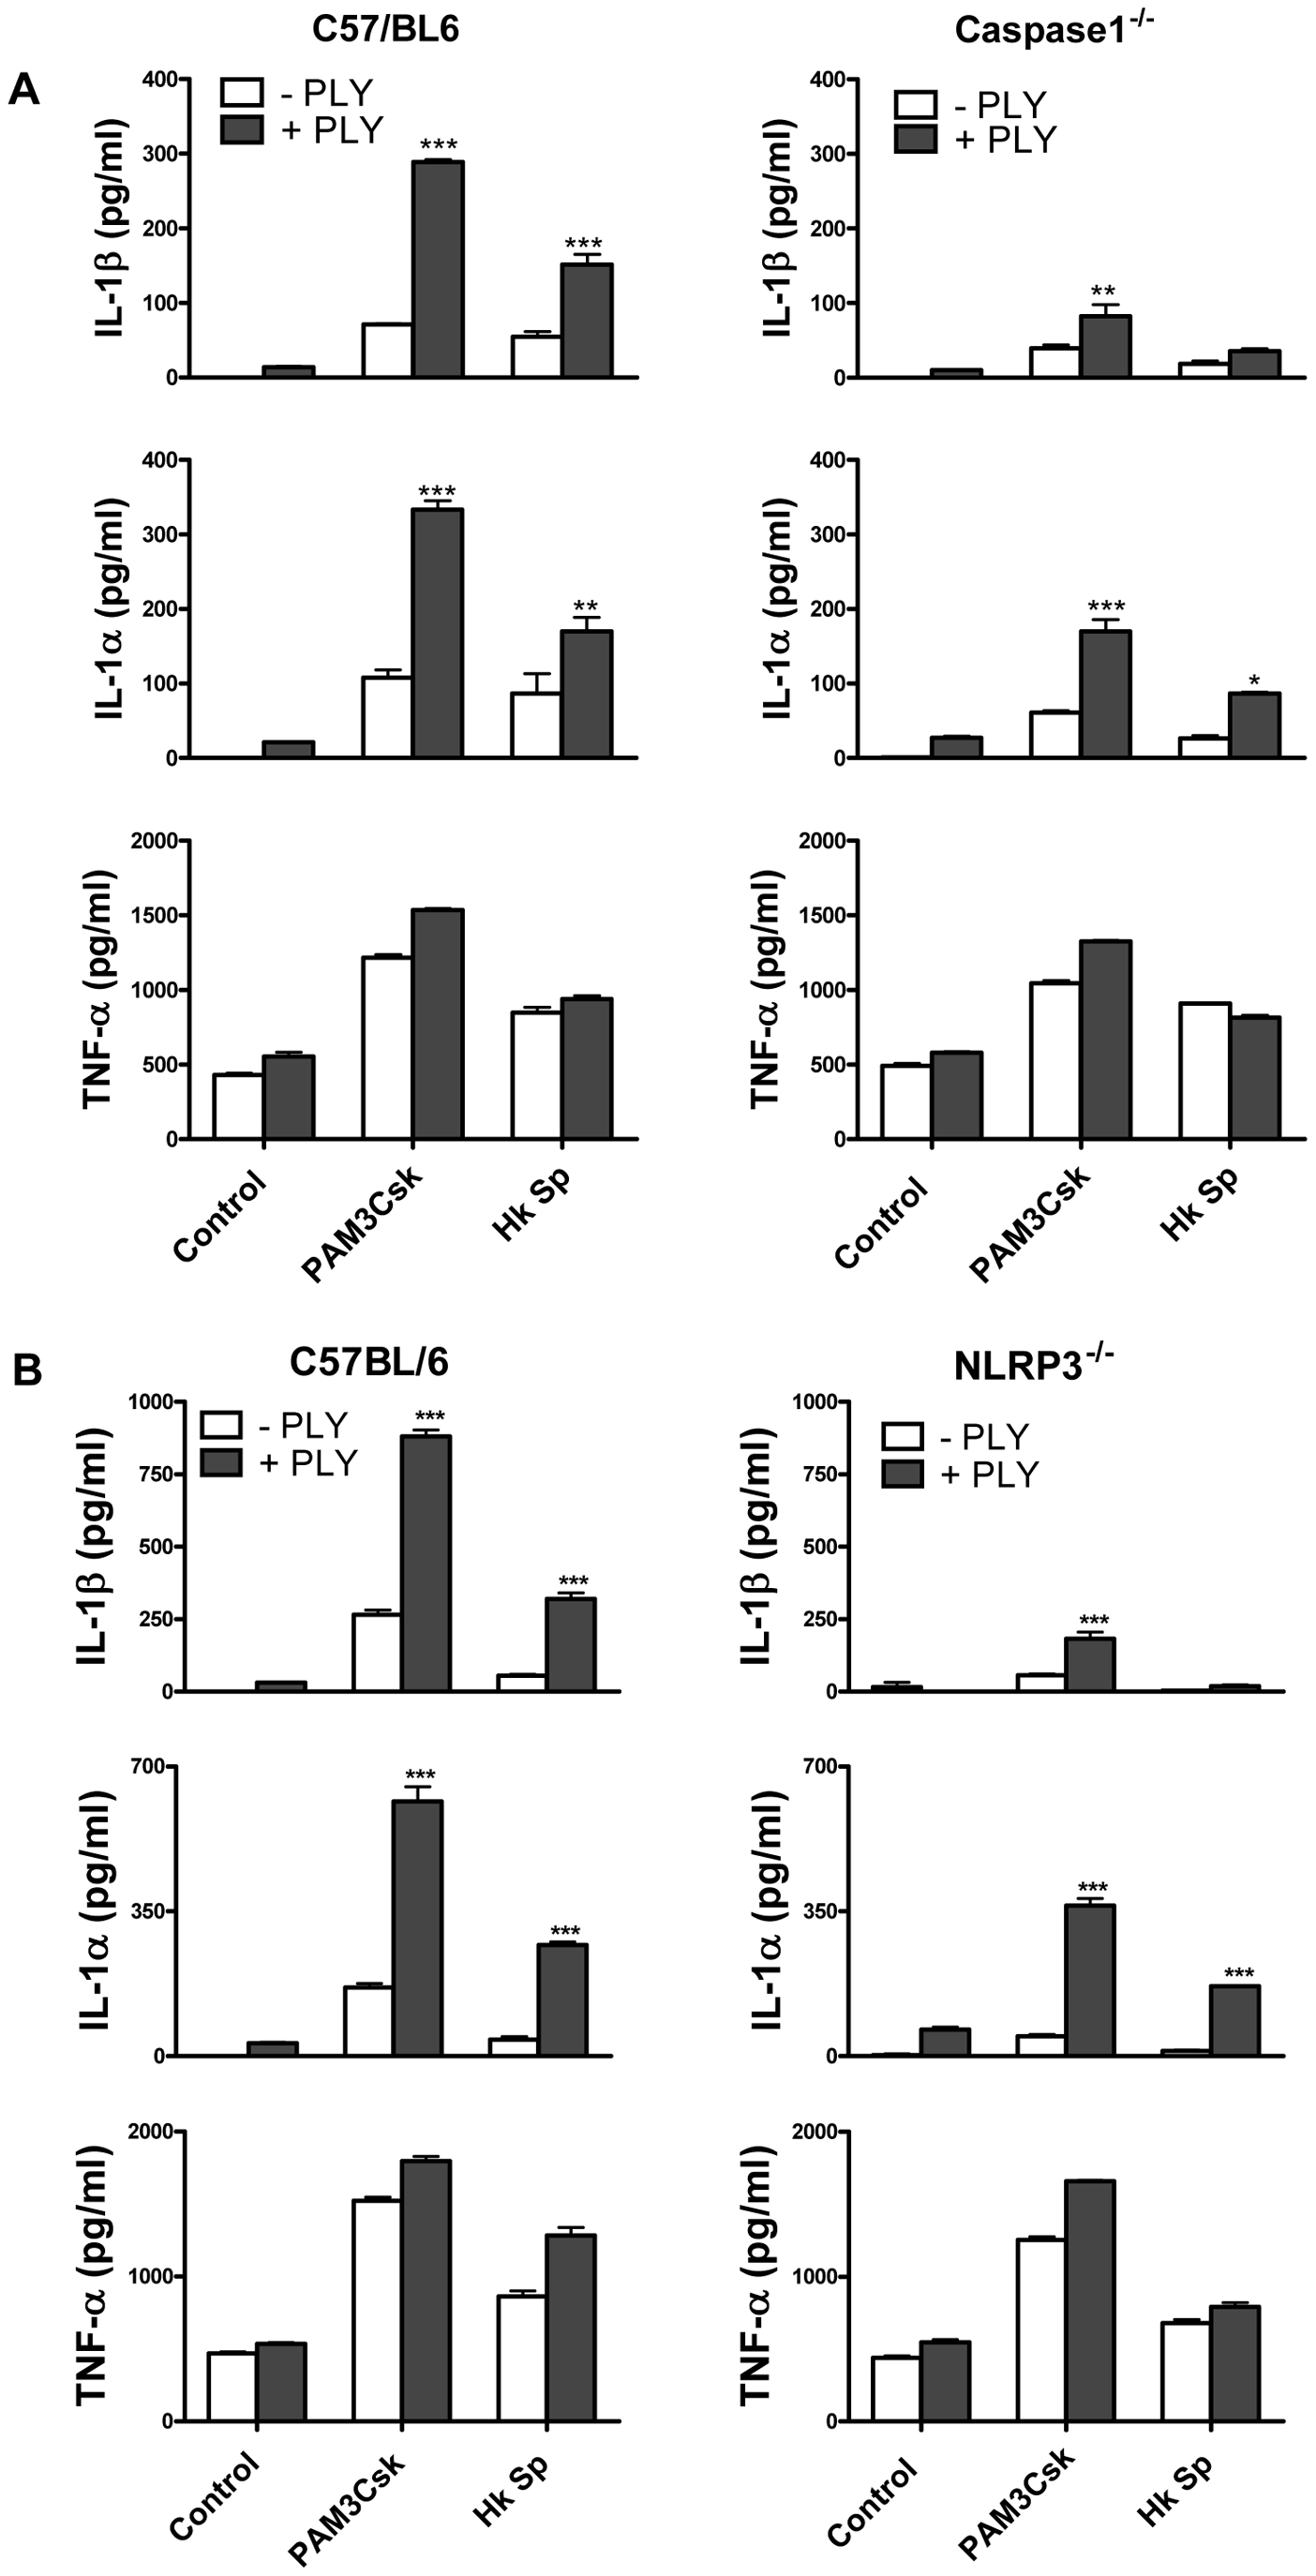 The ability of PLY to enhance IL-1β secretion by DC is caspase-1 and NLRP3-dependent.